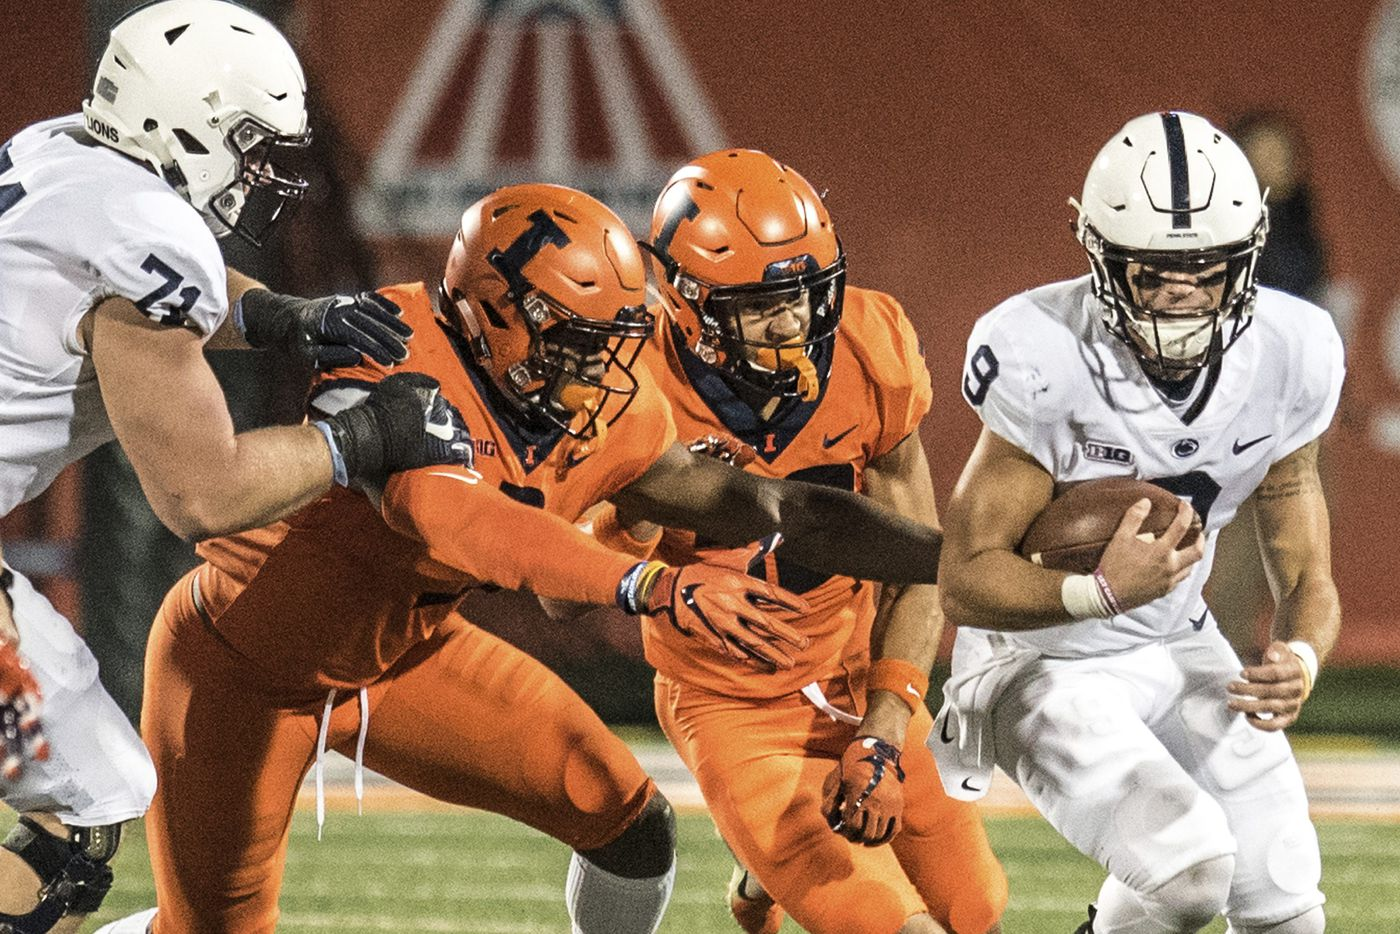 Penn State explodes in second half, downs Illinois